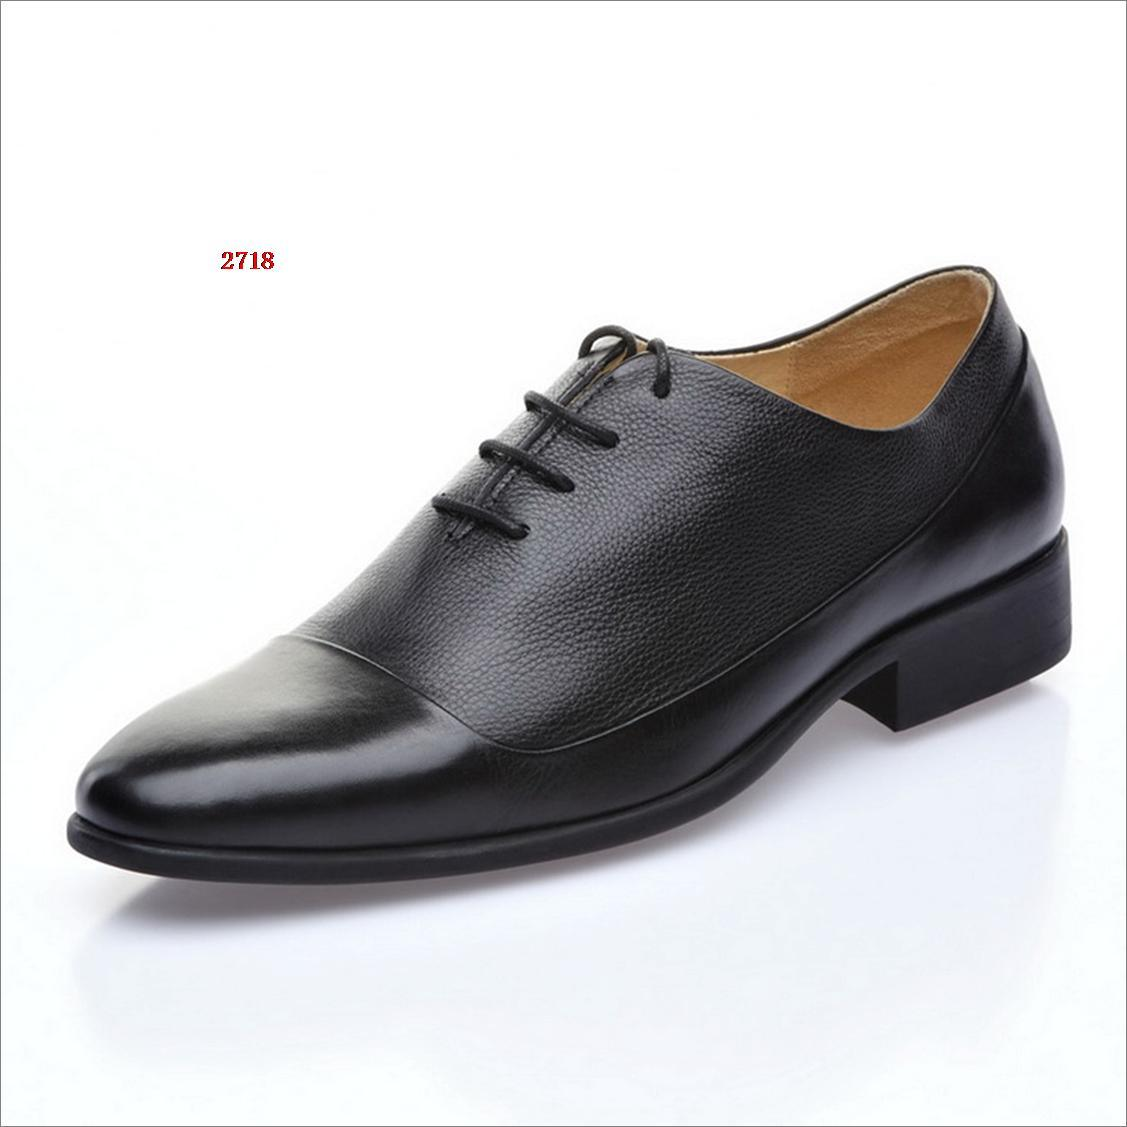 mens dress shoes dec 31 2012 23 07 26 picture gallery